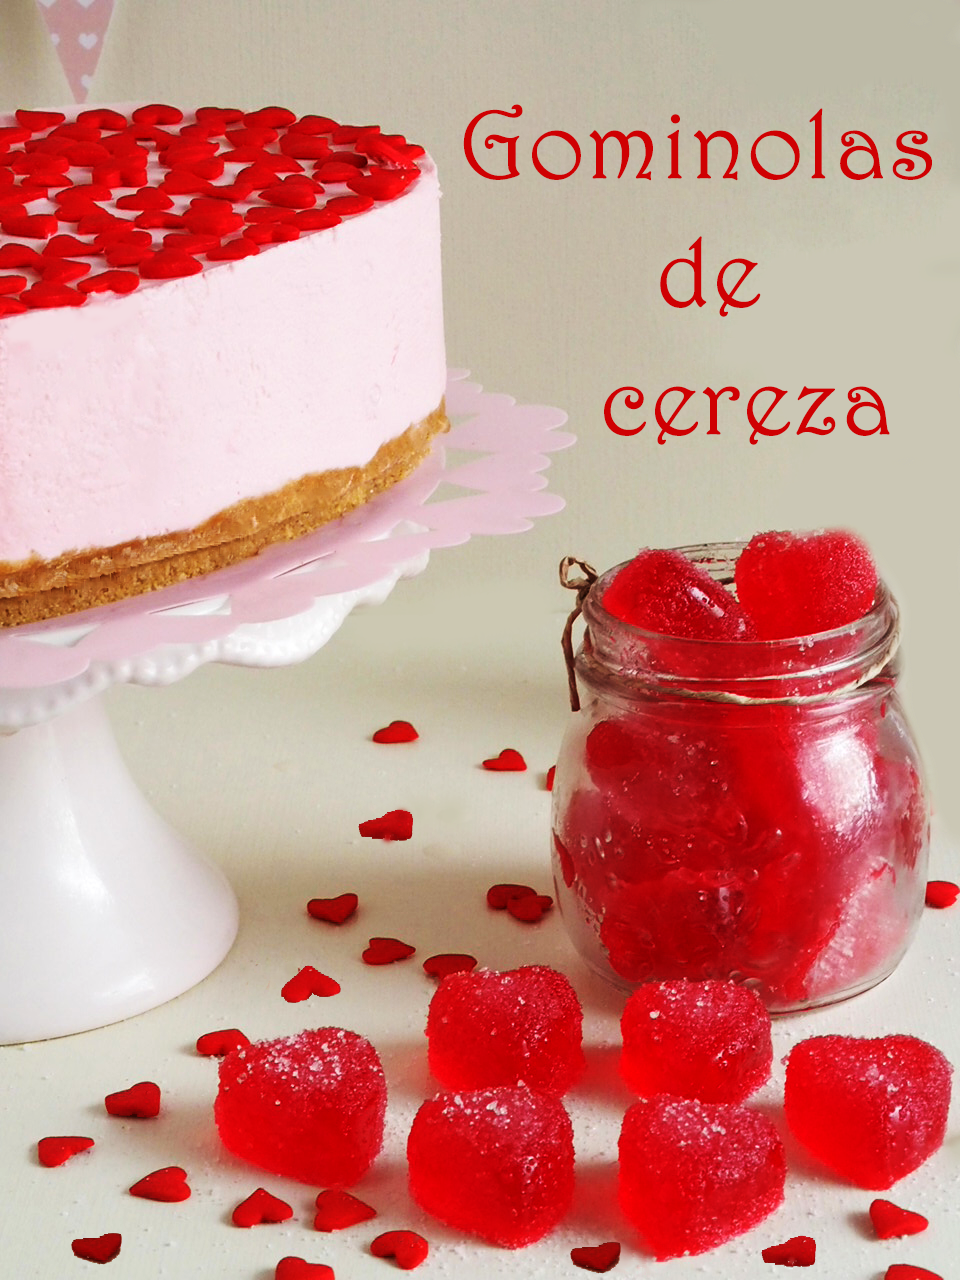 Gominolas de cereza